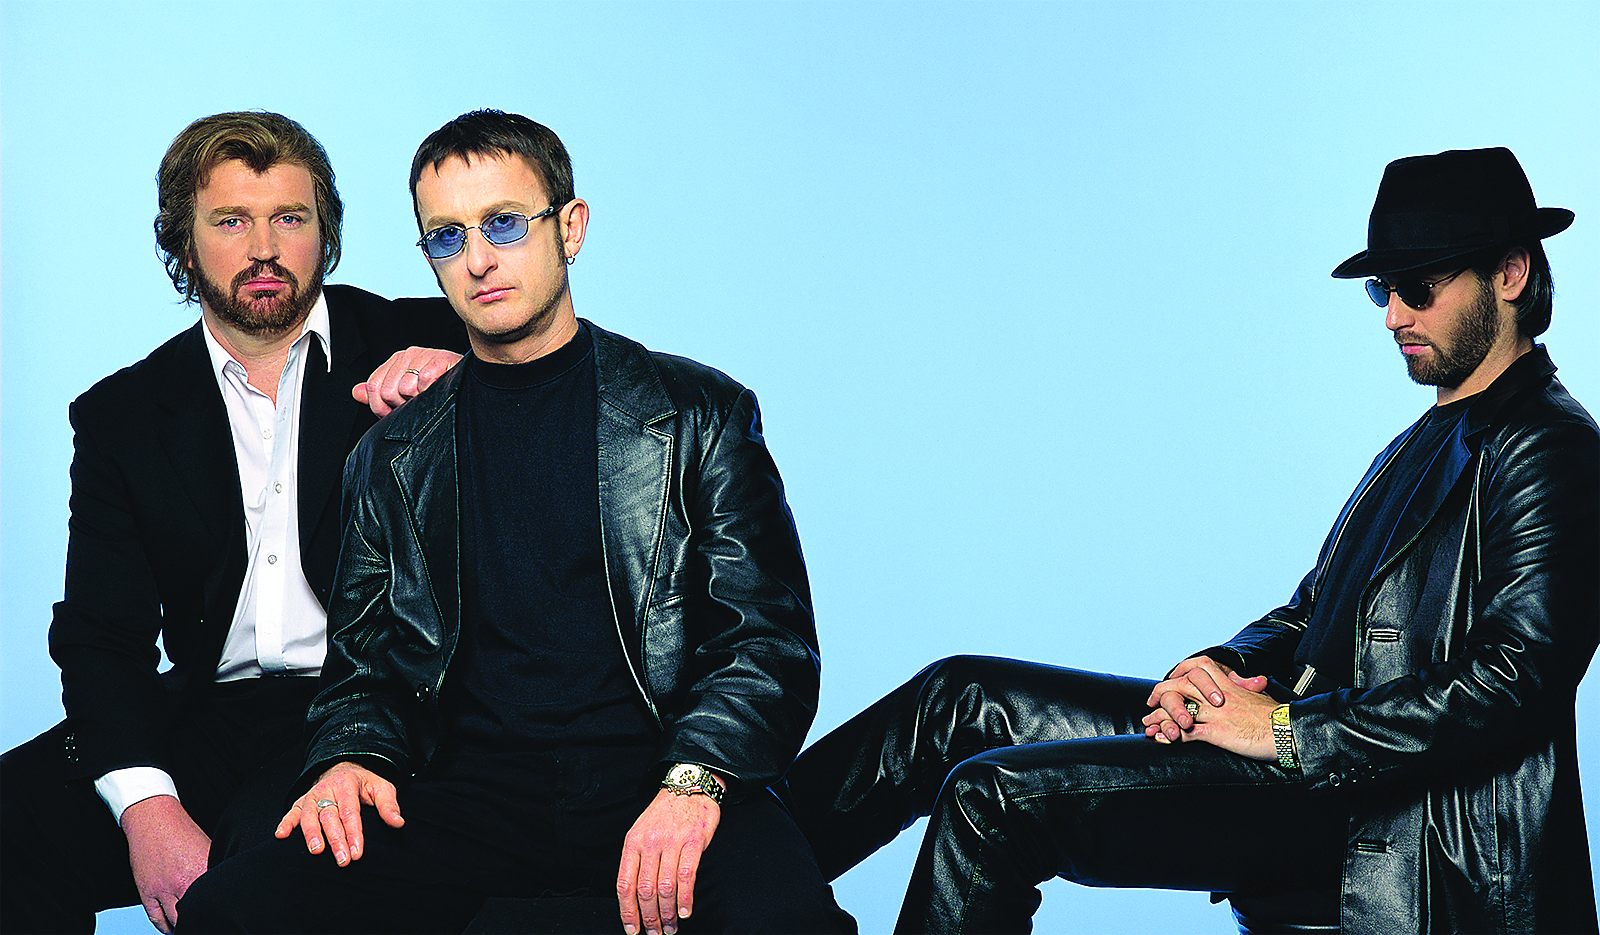 Bee Gees Tribute Band Mines Decades Of Hits The Blade